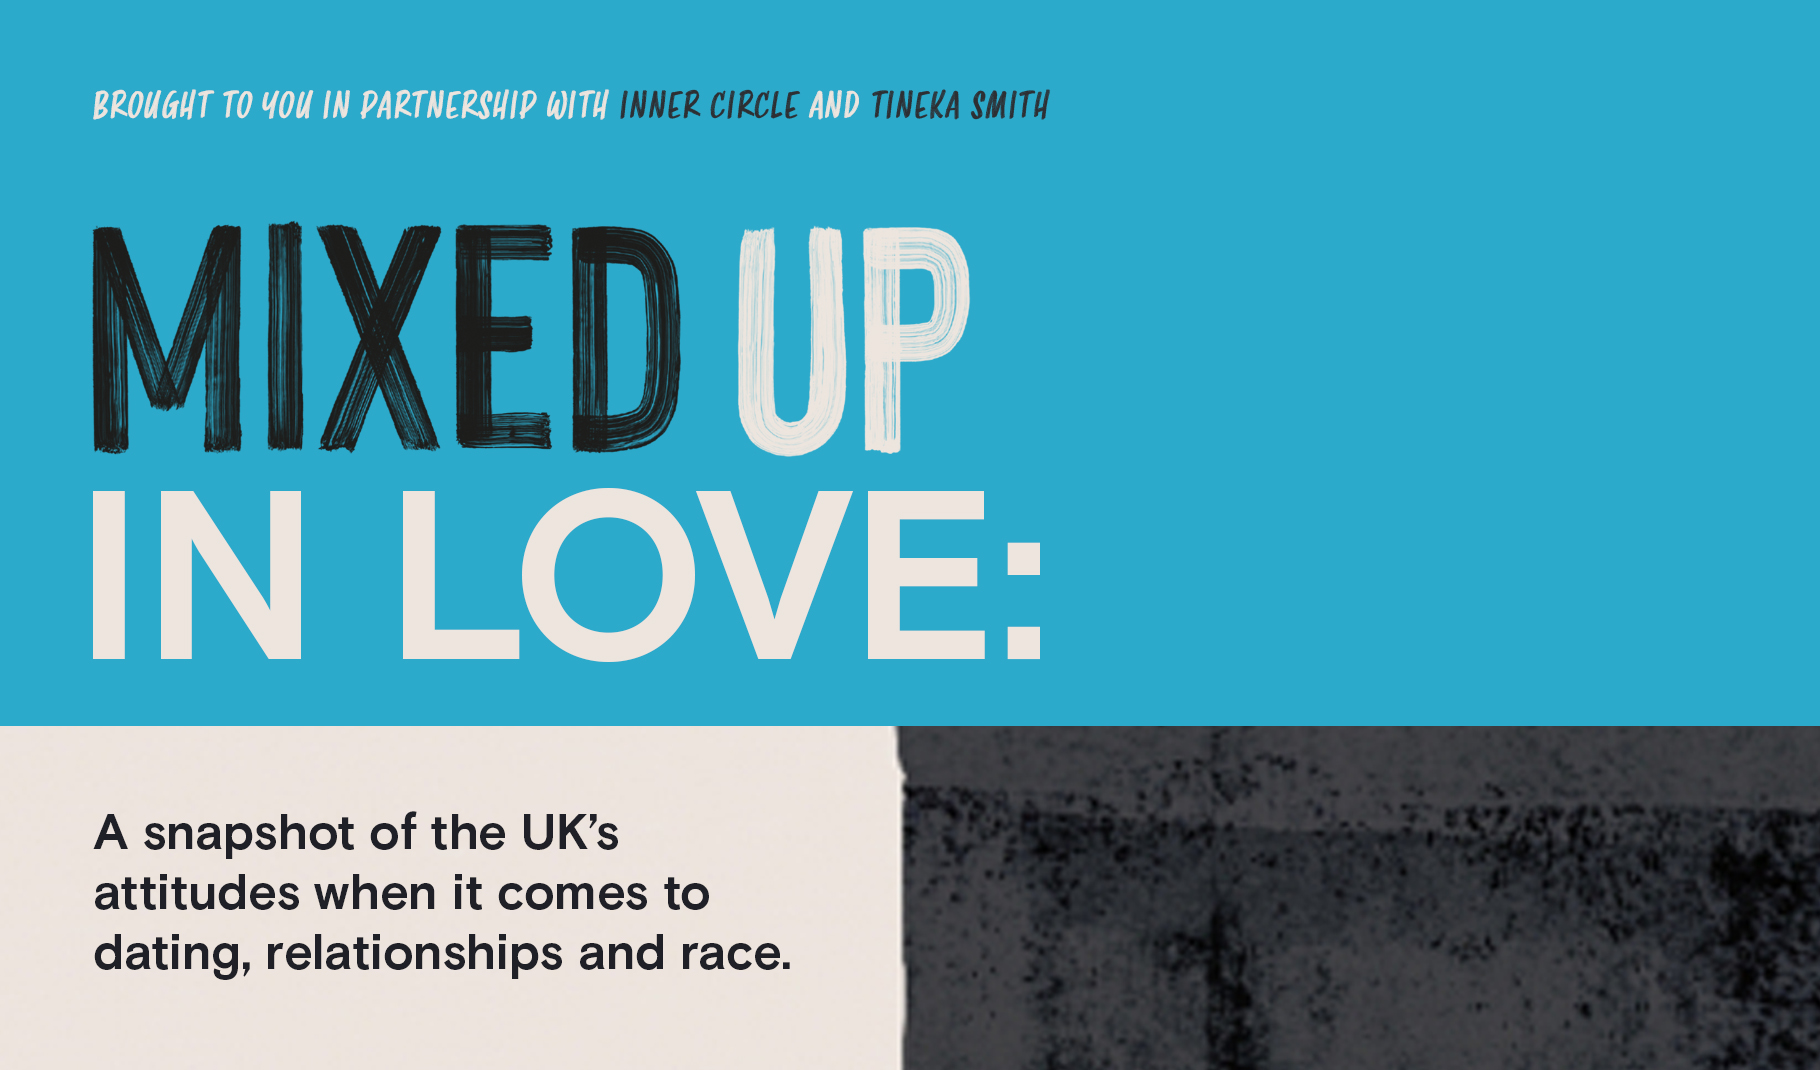 Inner Circle's 'Mixed Up in Love' Report Reveals Attitudes Toward Interracial Relationships